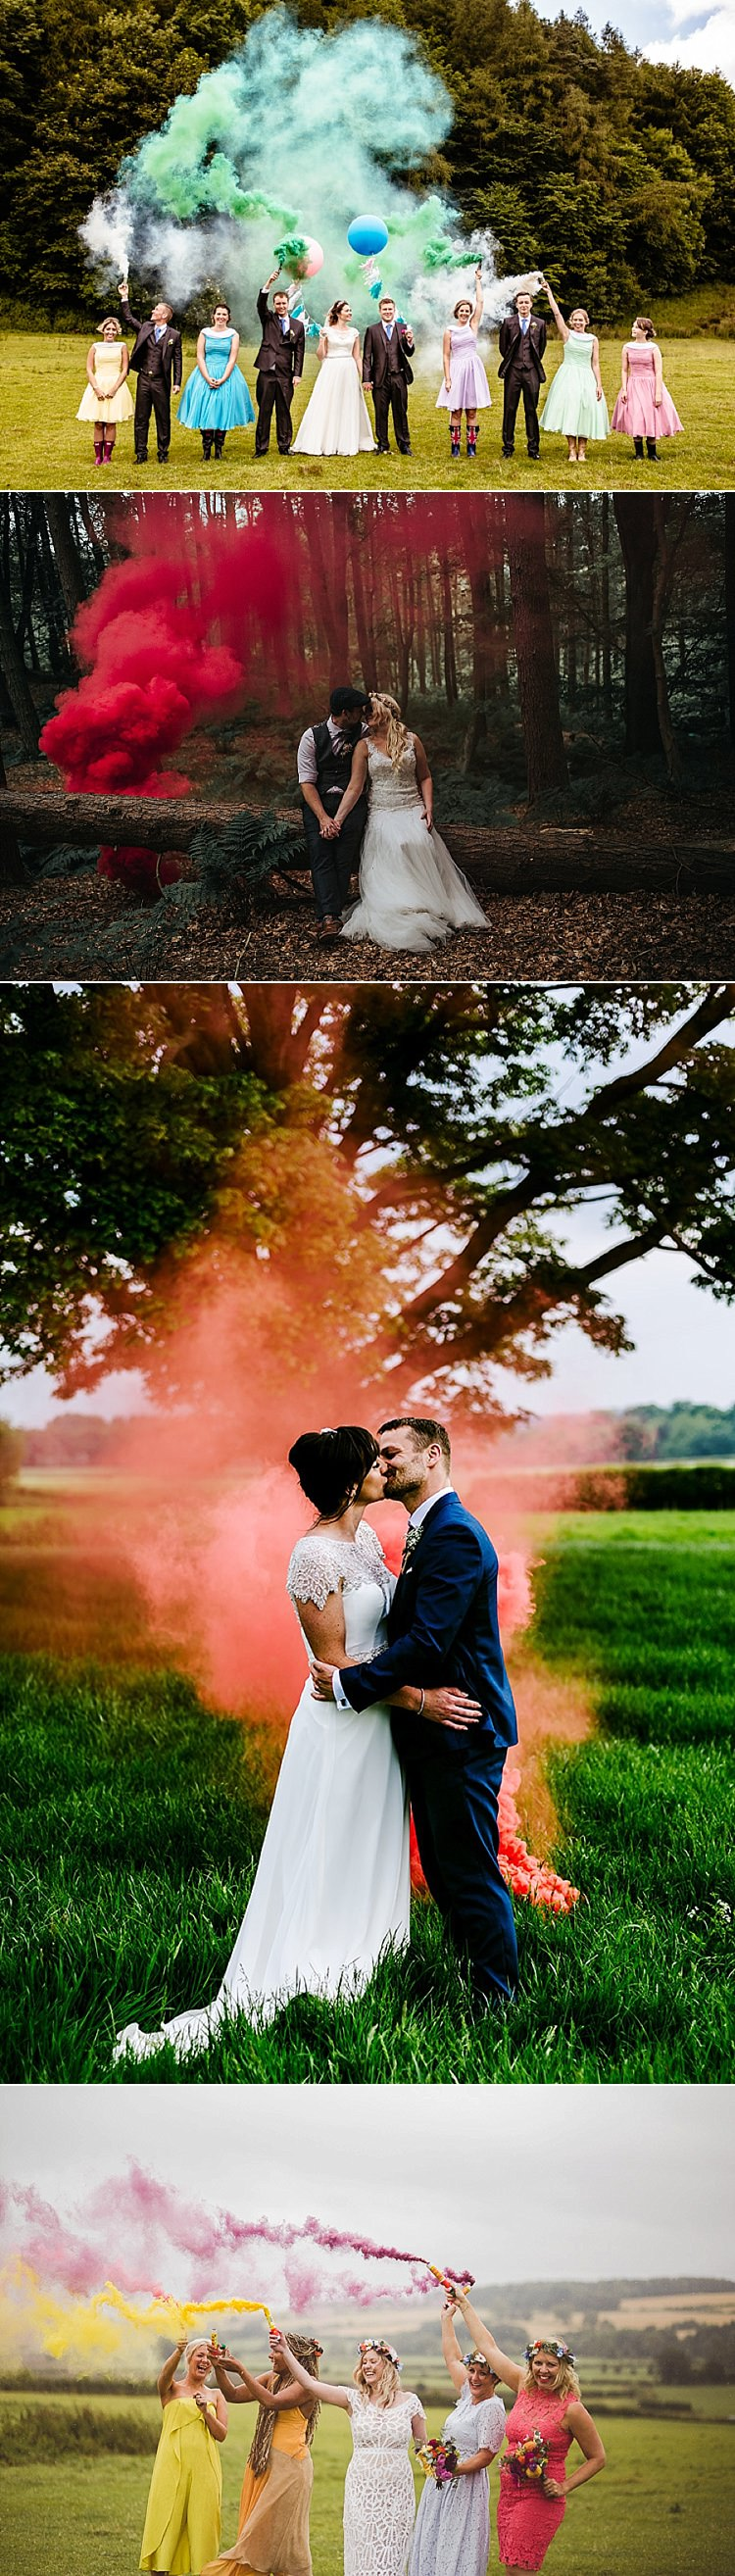 Smoke Bomb Wedding Photographs Ideas Photos Images